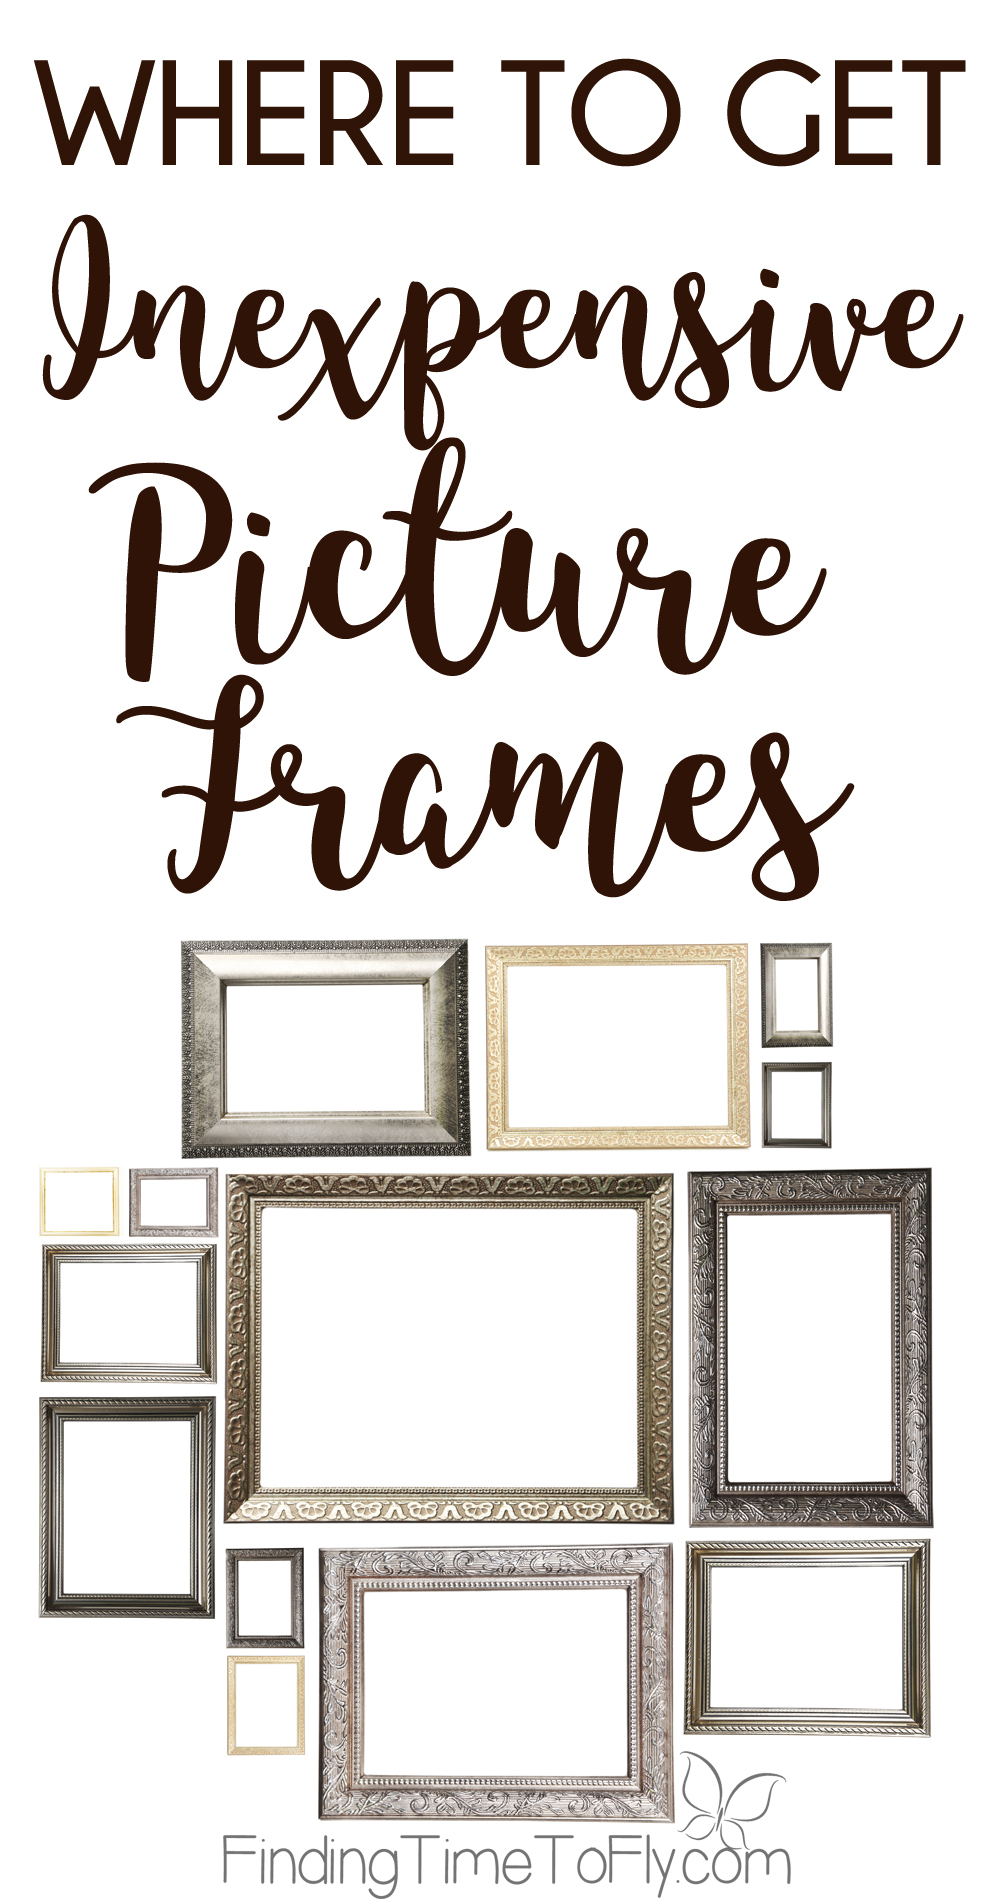 What a great list of where to get inexpensive picture frames. I'm going shopping!